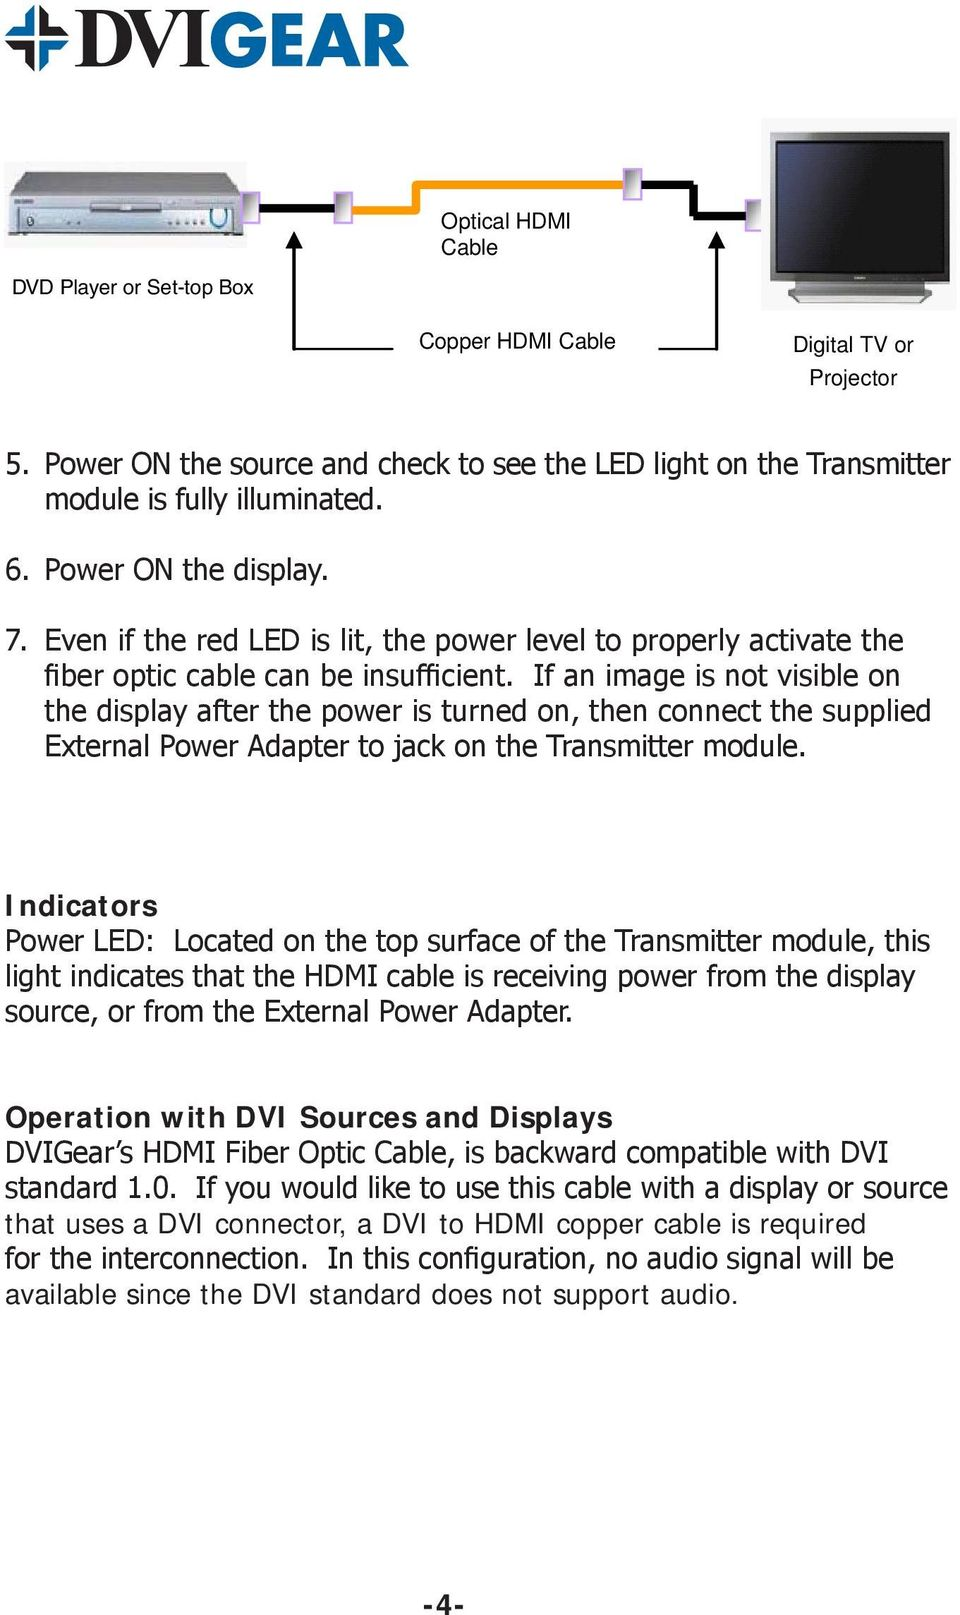 If an image is not visible on the display after the power is turned on, then connect the supplied External Power Adapter to jack on the Transmitter module.